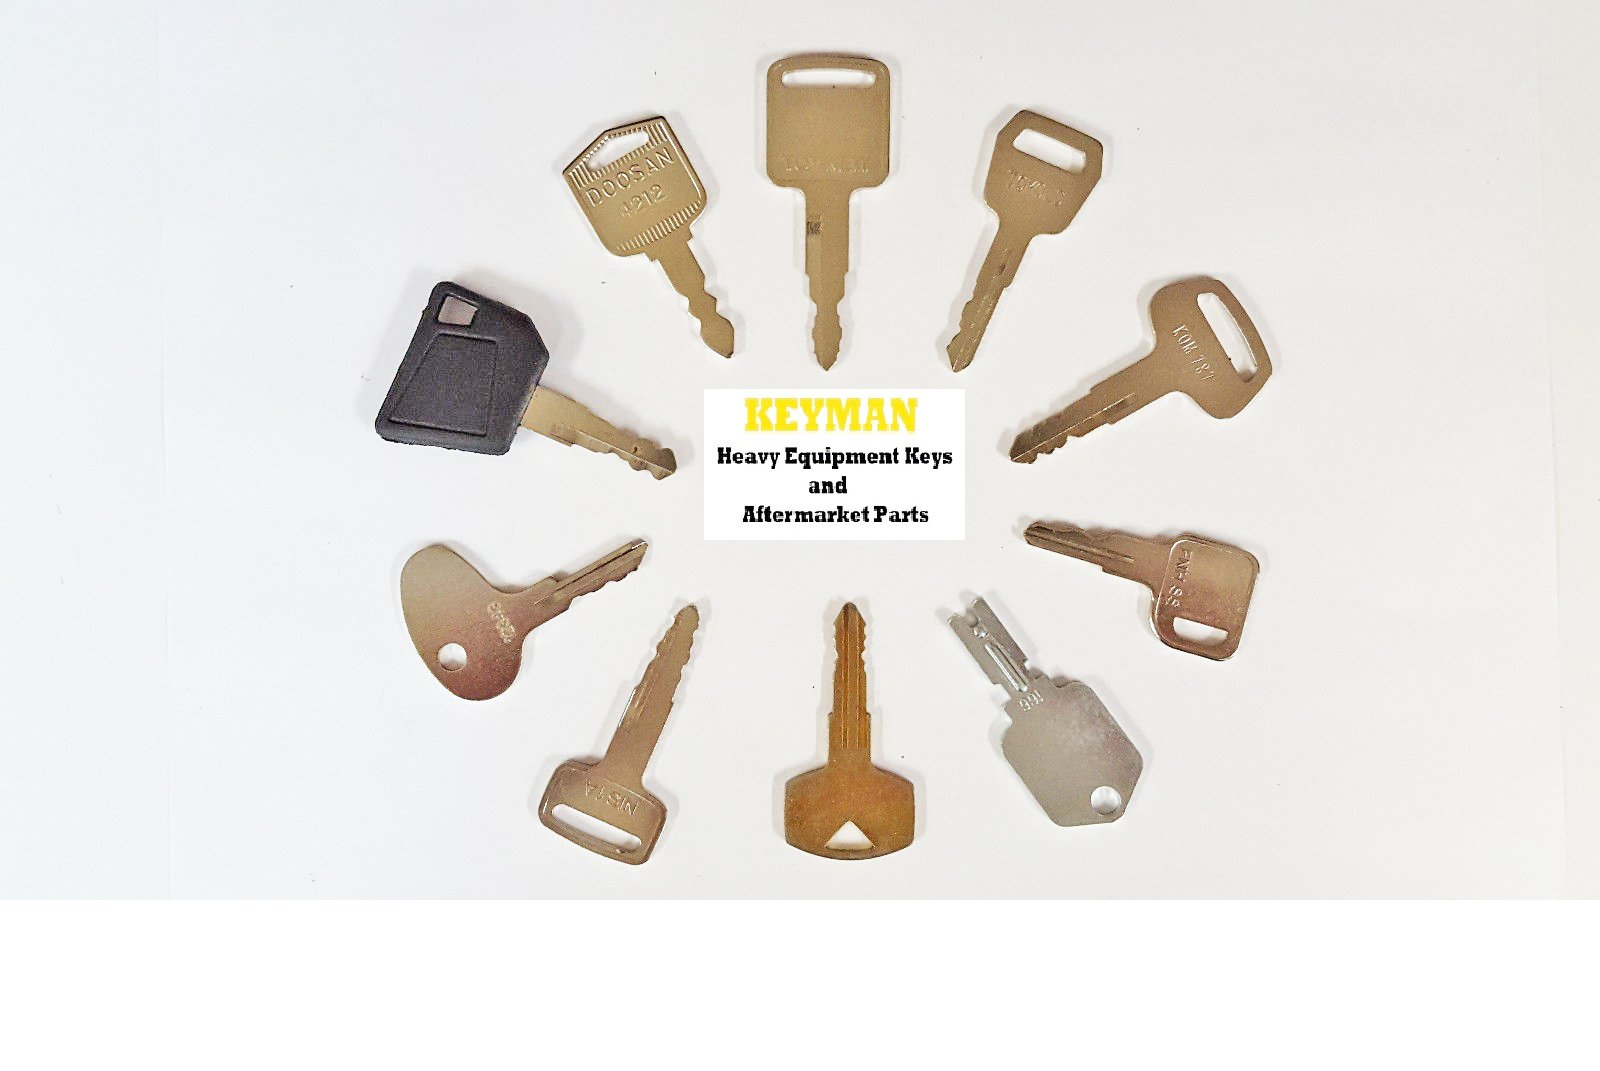 Keyman Forklift Heavy Equipment/Construction Ignition 10 Key Set Yale Cat Clark Komatsu Toyota Doosan Nissan Hyster JCB Volvo Equipment Keys Set